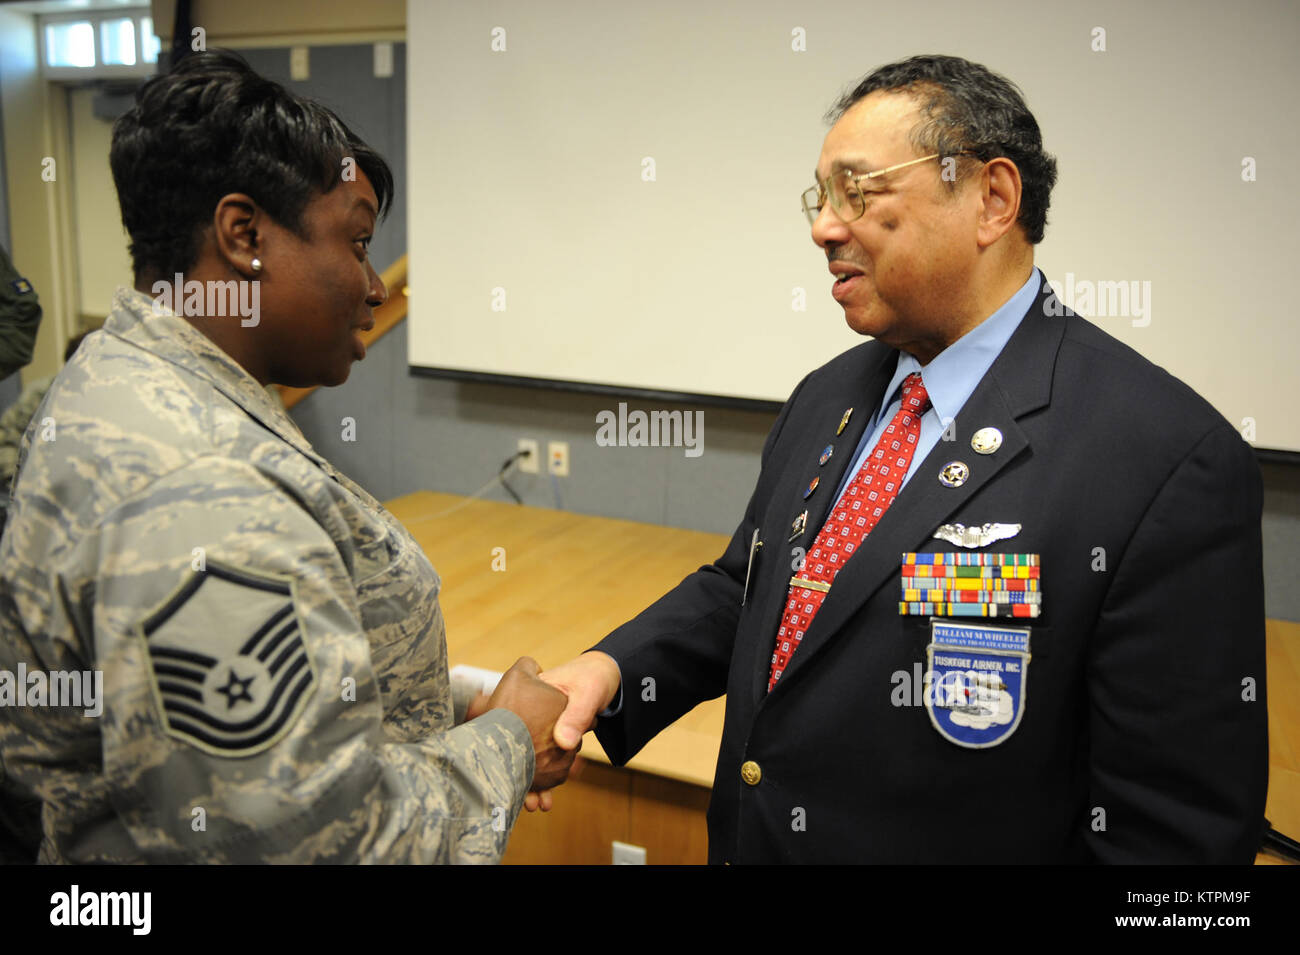 a chief lieutenant of the tuskegee View notes - book assignment from history 2091 at florida a&m juliet martin amh 2091 november 16, 2010 dr sylvester cohen questions for a chief lieutenant of the tuskegee machine 1 discuss the.